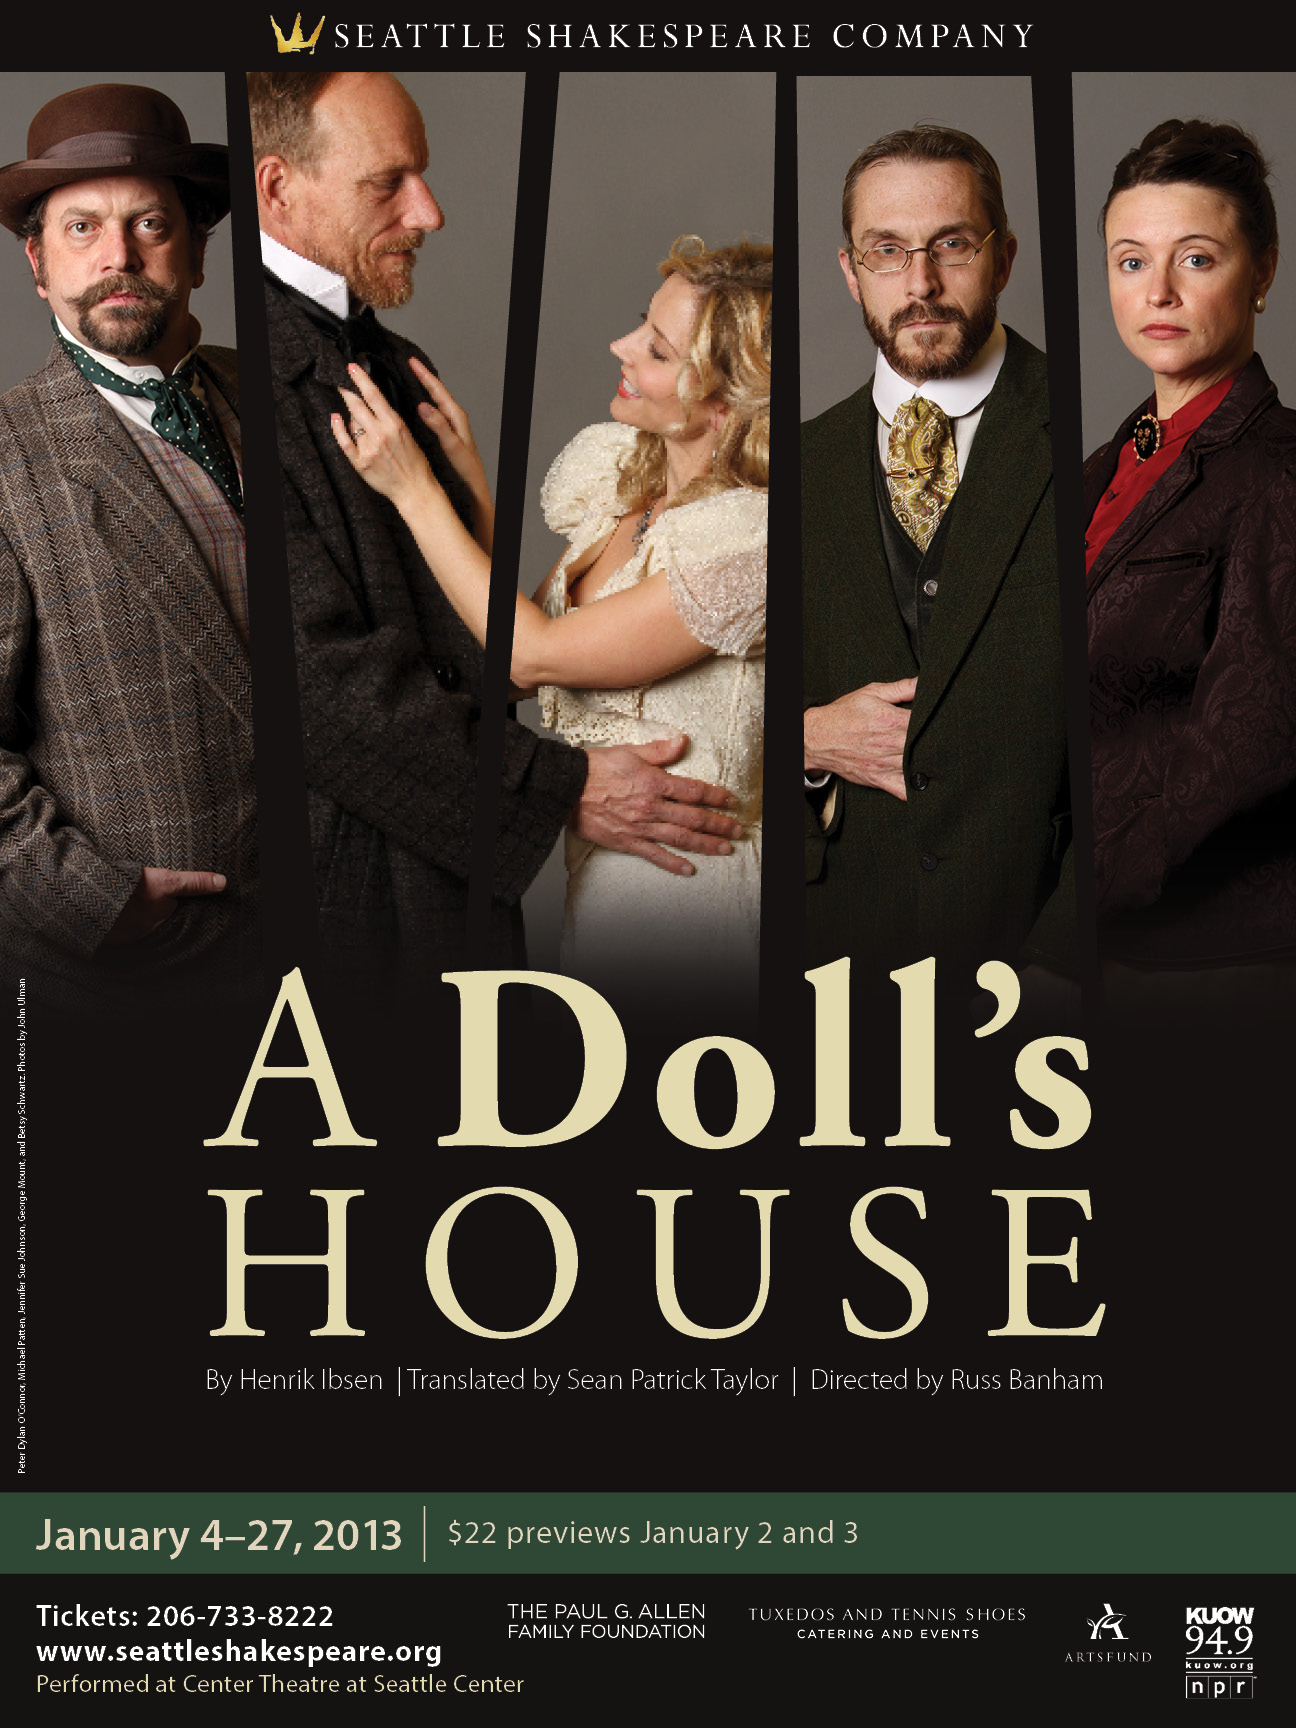 a doll s house seattle shakespeare company